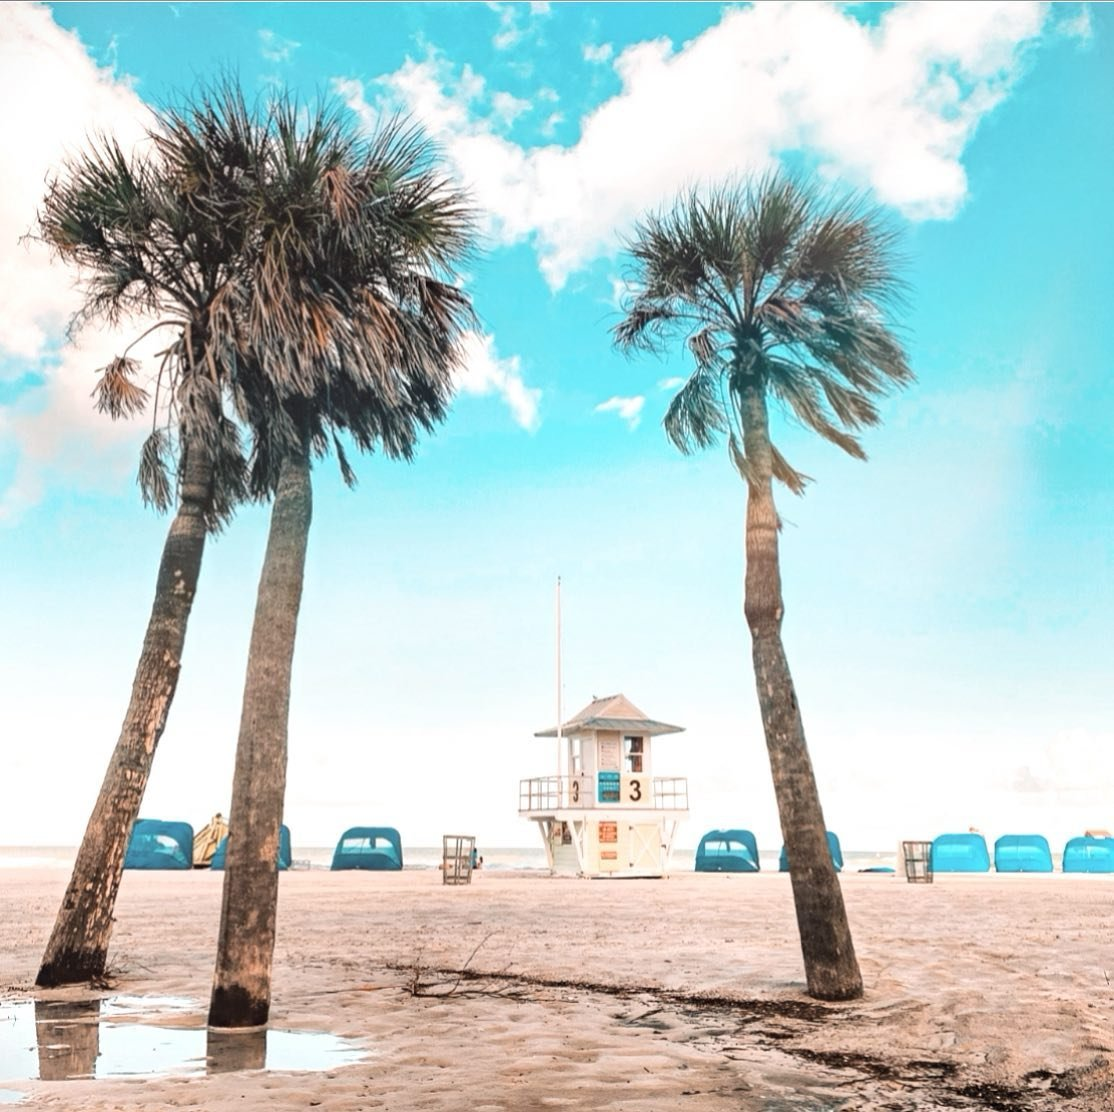 May your day be filled with blue skies, palm trees and some puffy clouds ☁️🥂🌴 #liveamplified . .  #CLPicks #coastalife #staysalty #floridavibes  #palmtrees🌴 #cleargram #postcardsfromtheworld  #tampabay #happyhourtime #lovefl #peacefull #theview #sunshinestate #florida_greatshots #igersflorida  #floridalifestyle #floridalife🌴 #floridaliving #florida #iloveflorida  #sharealittlesunshine #visitfl #pureflorida #travelislife #floridian #floridalife #bestofthesunshinestate #shotoniphone